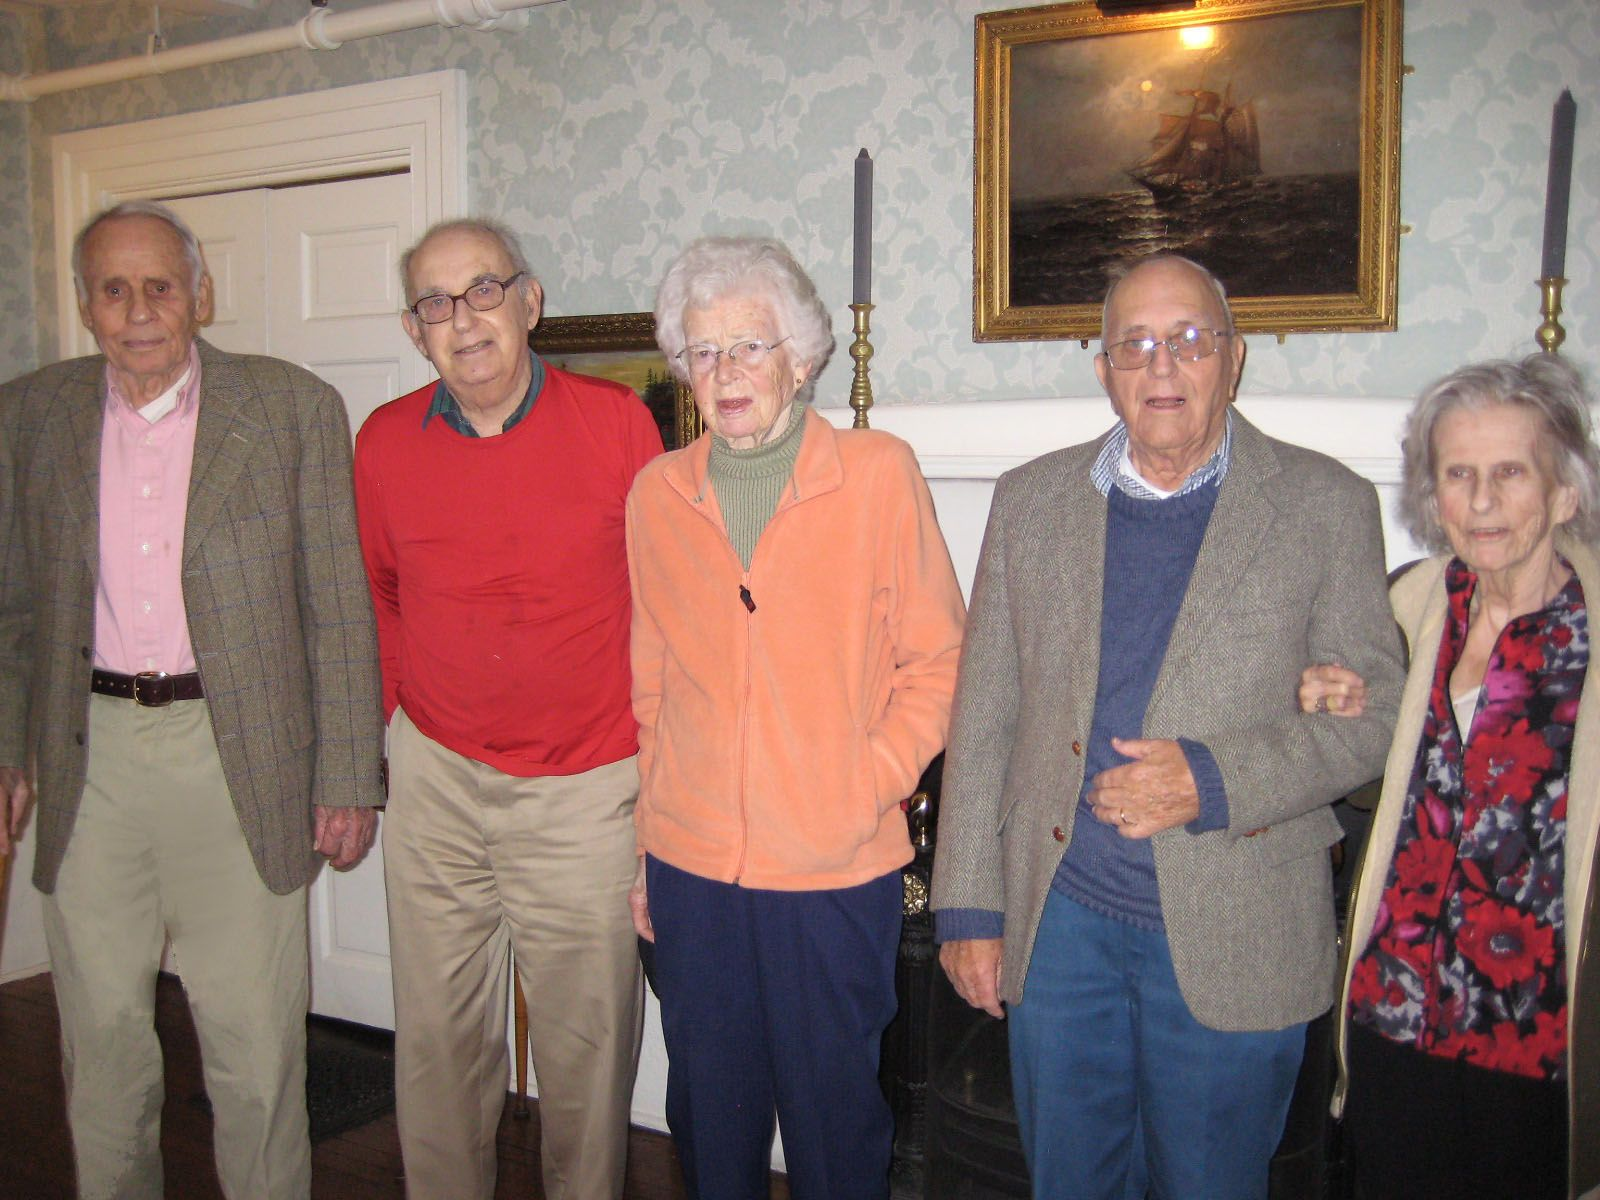 The 1941 luncheon at the Colonial Inn in Concord on October 22, 2012. (Left to right): Giff Gifford '41, Tom Porter '41, Barbara Gifford, Bob Sanford '41 and Martha Sanford.